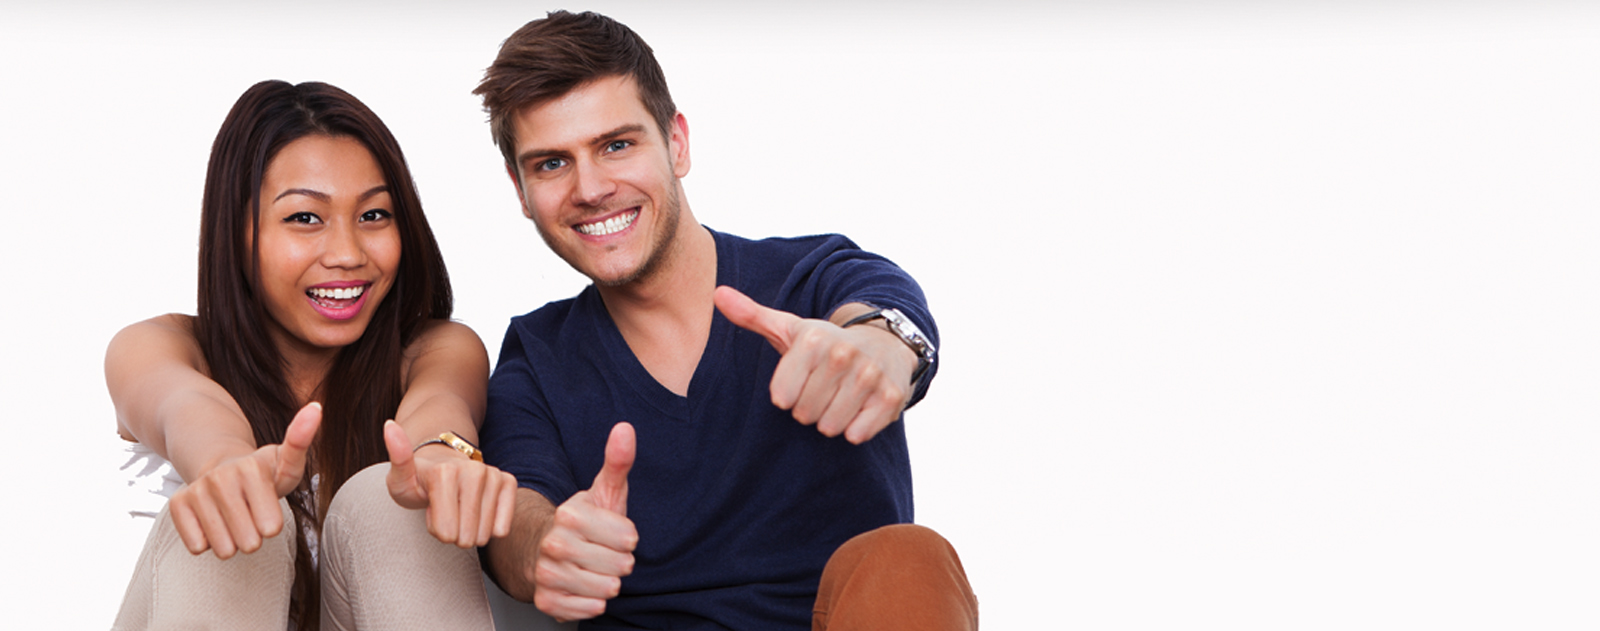 BEST_NEW_JERSEY_TEETH_WHITENING_Services_3